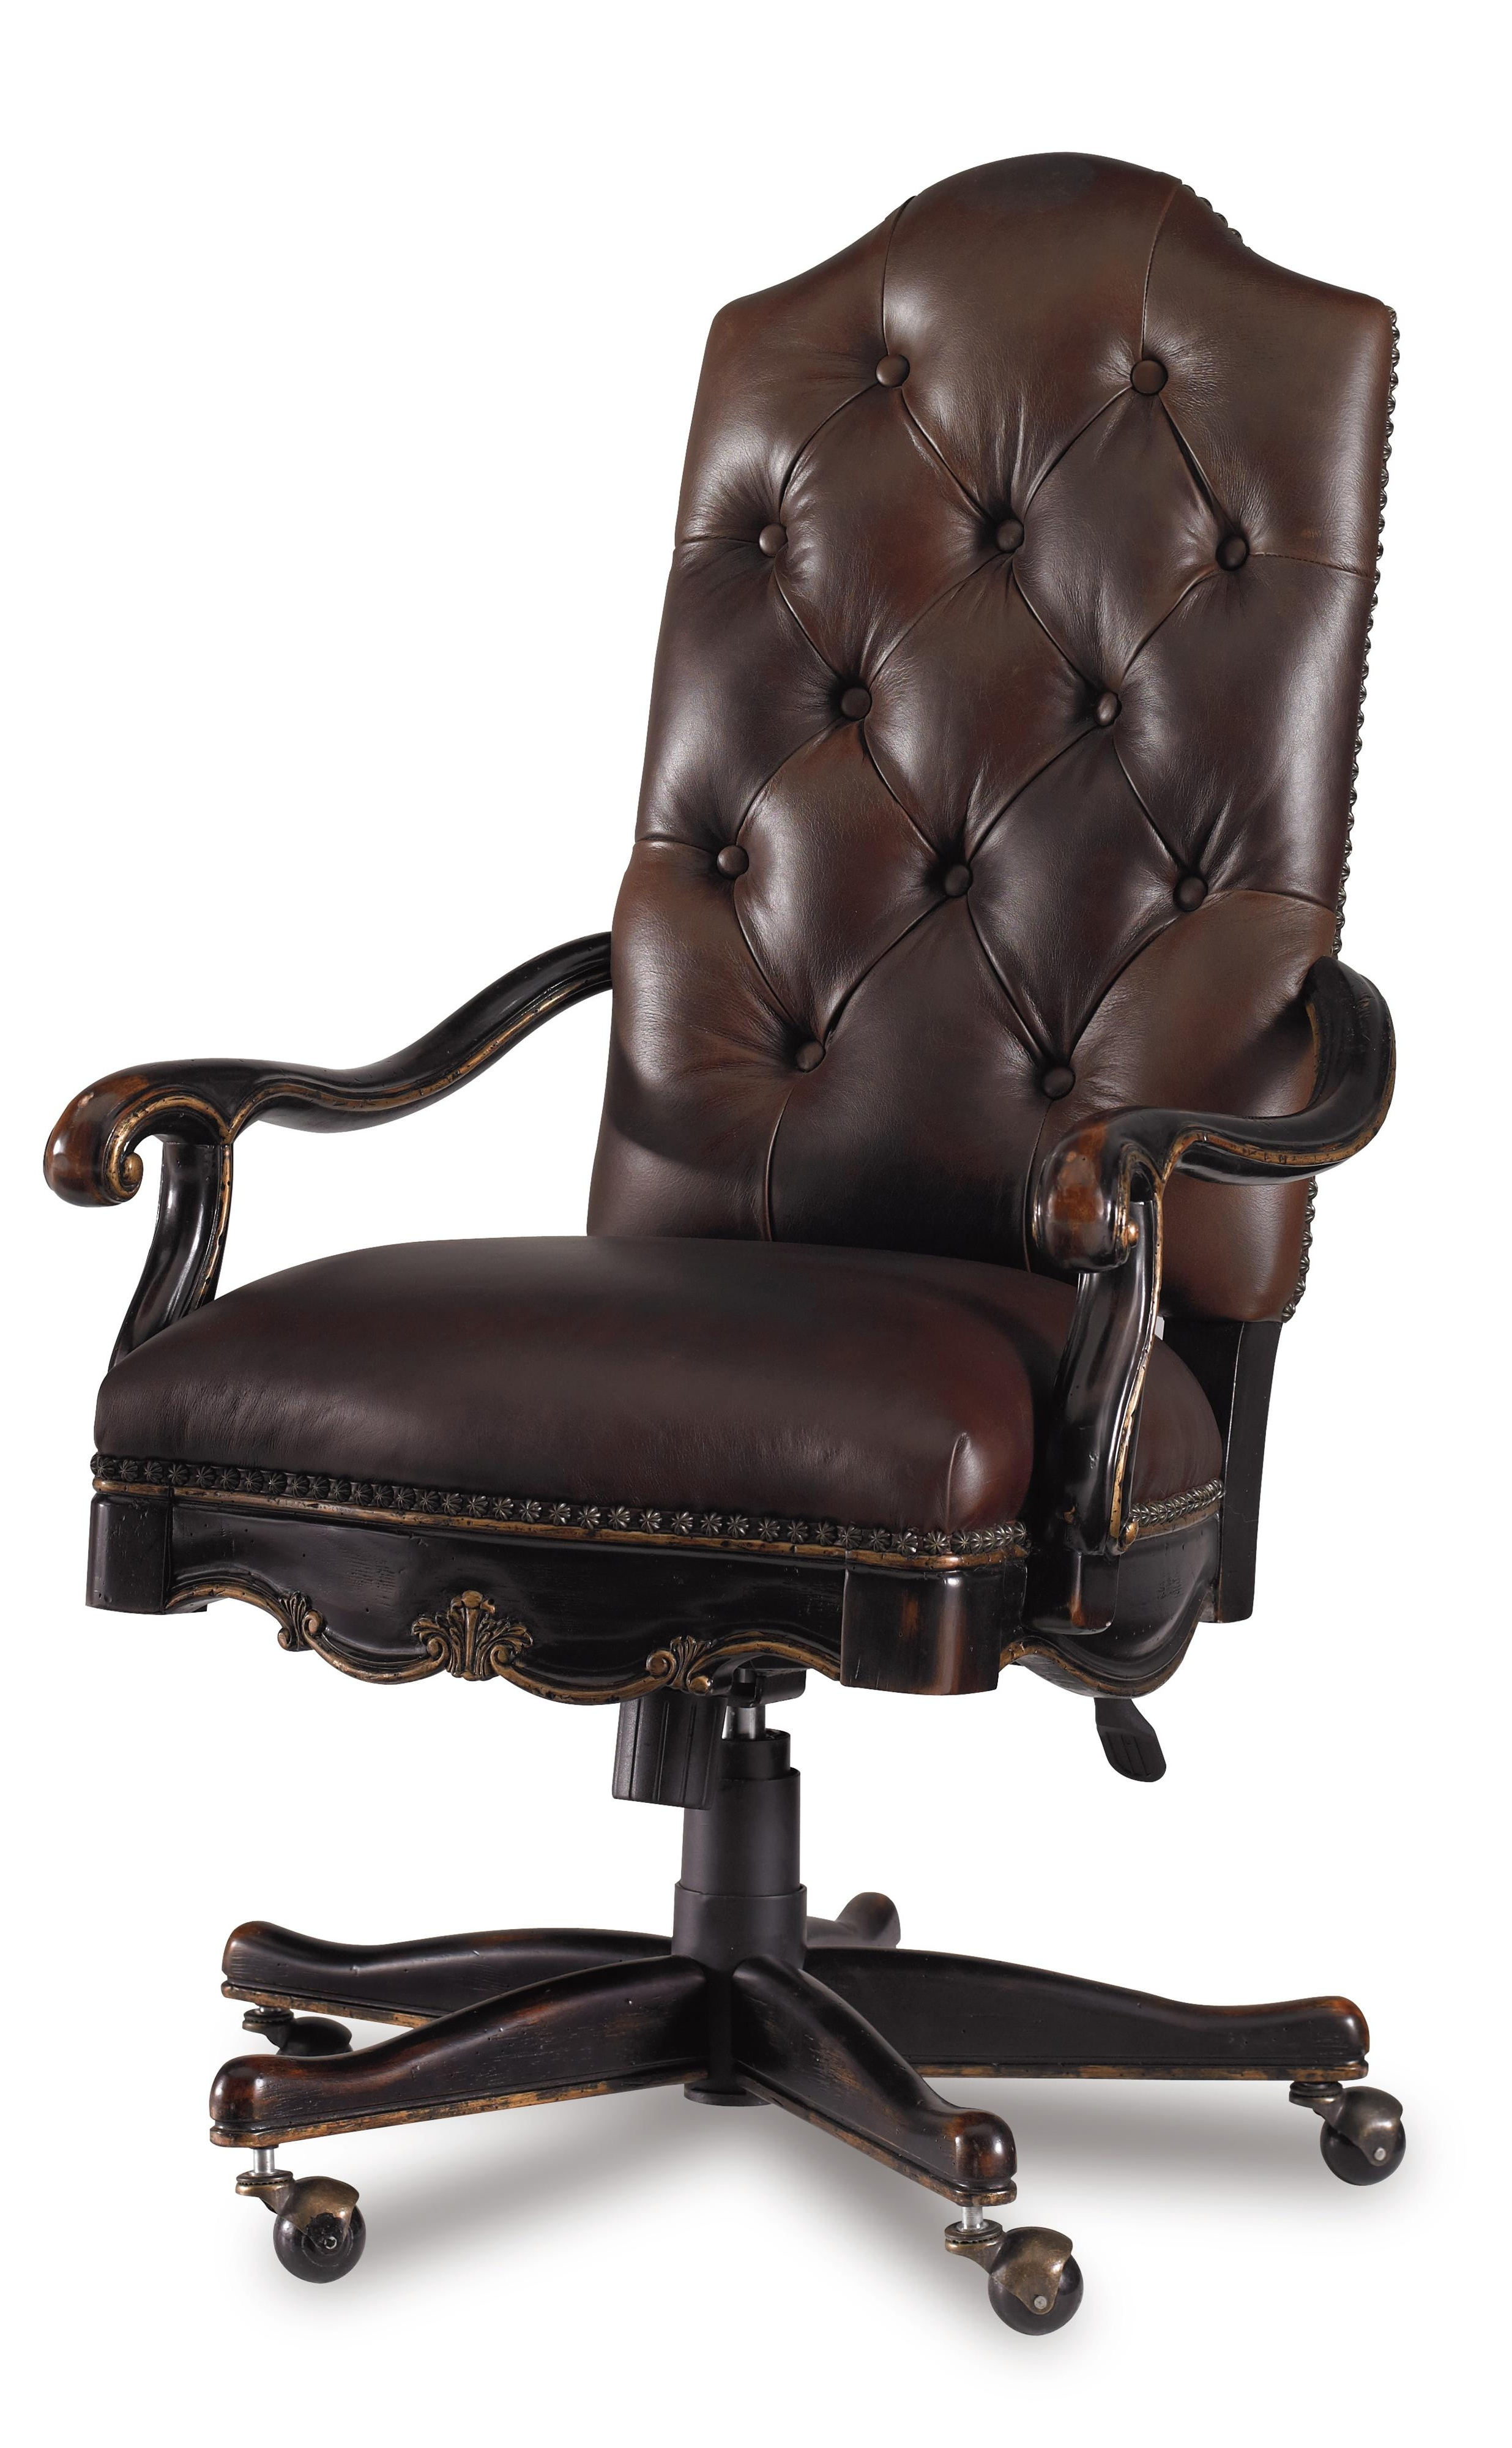 Chair : Traditional Executive Leather Office Chairs Ideas For Throughout Most Recently Released Wood And Leather Executive Office Chairs (View 4 of 20)